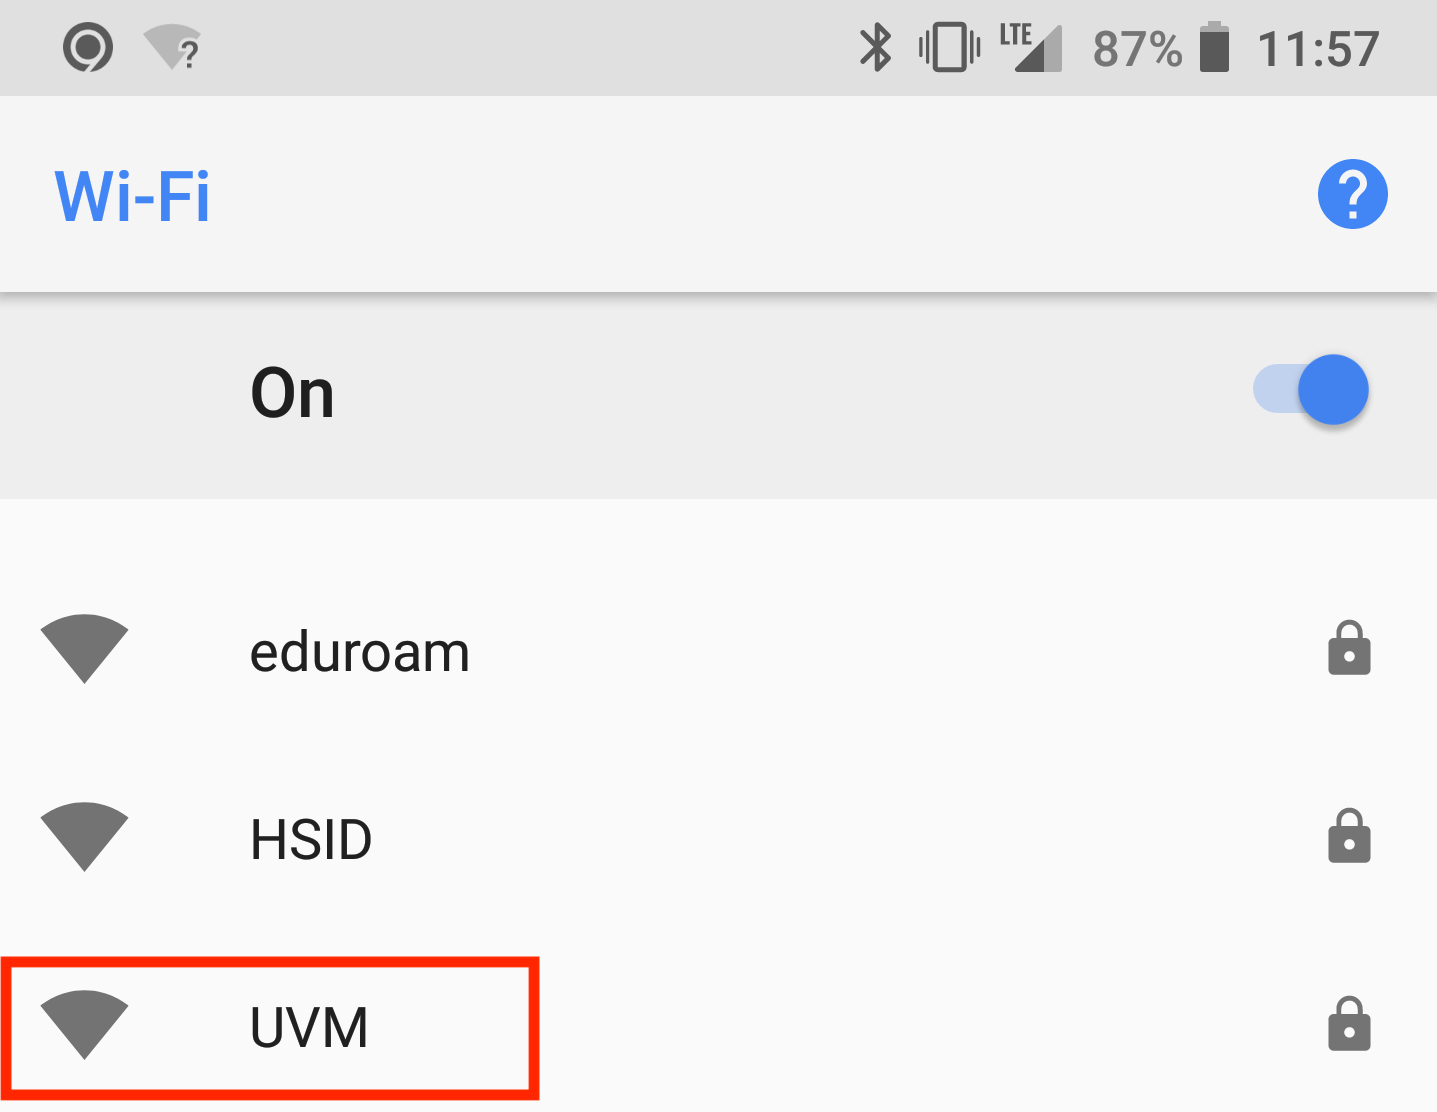 Connect To Uvm Wireless Ets Knowledge Base Set Up Printer Diagram After Installing Naming The Certificate Open Your Devices Wi Fi Settings And Select Network